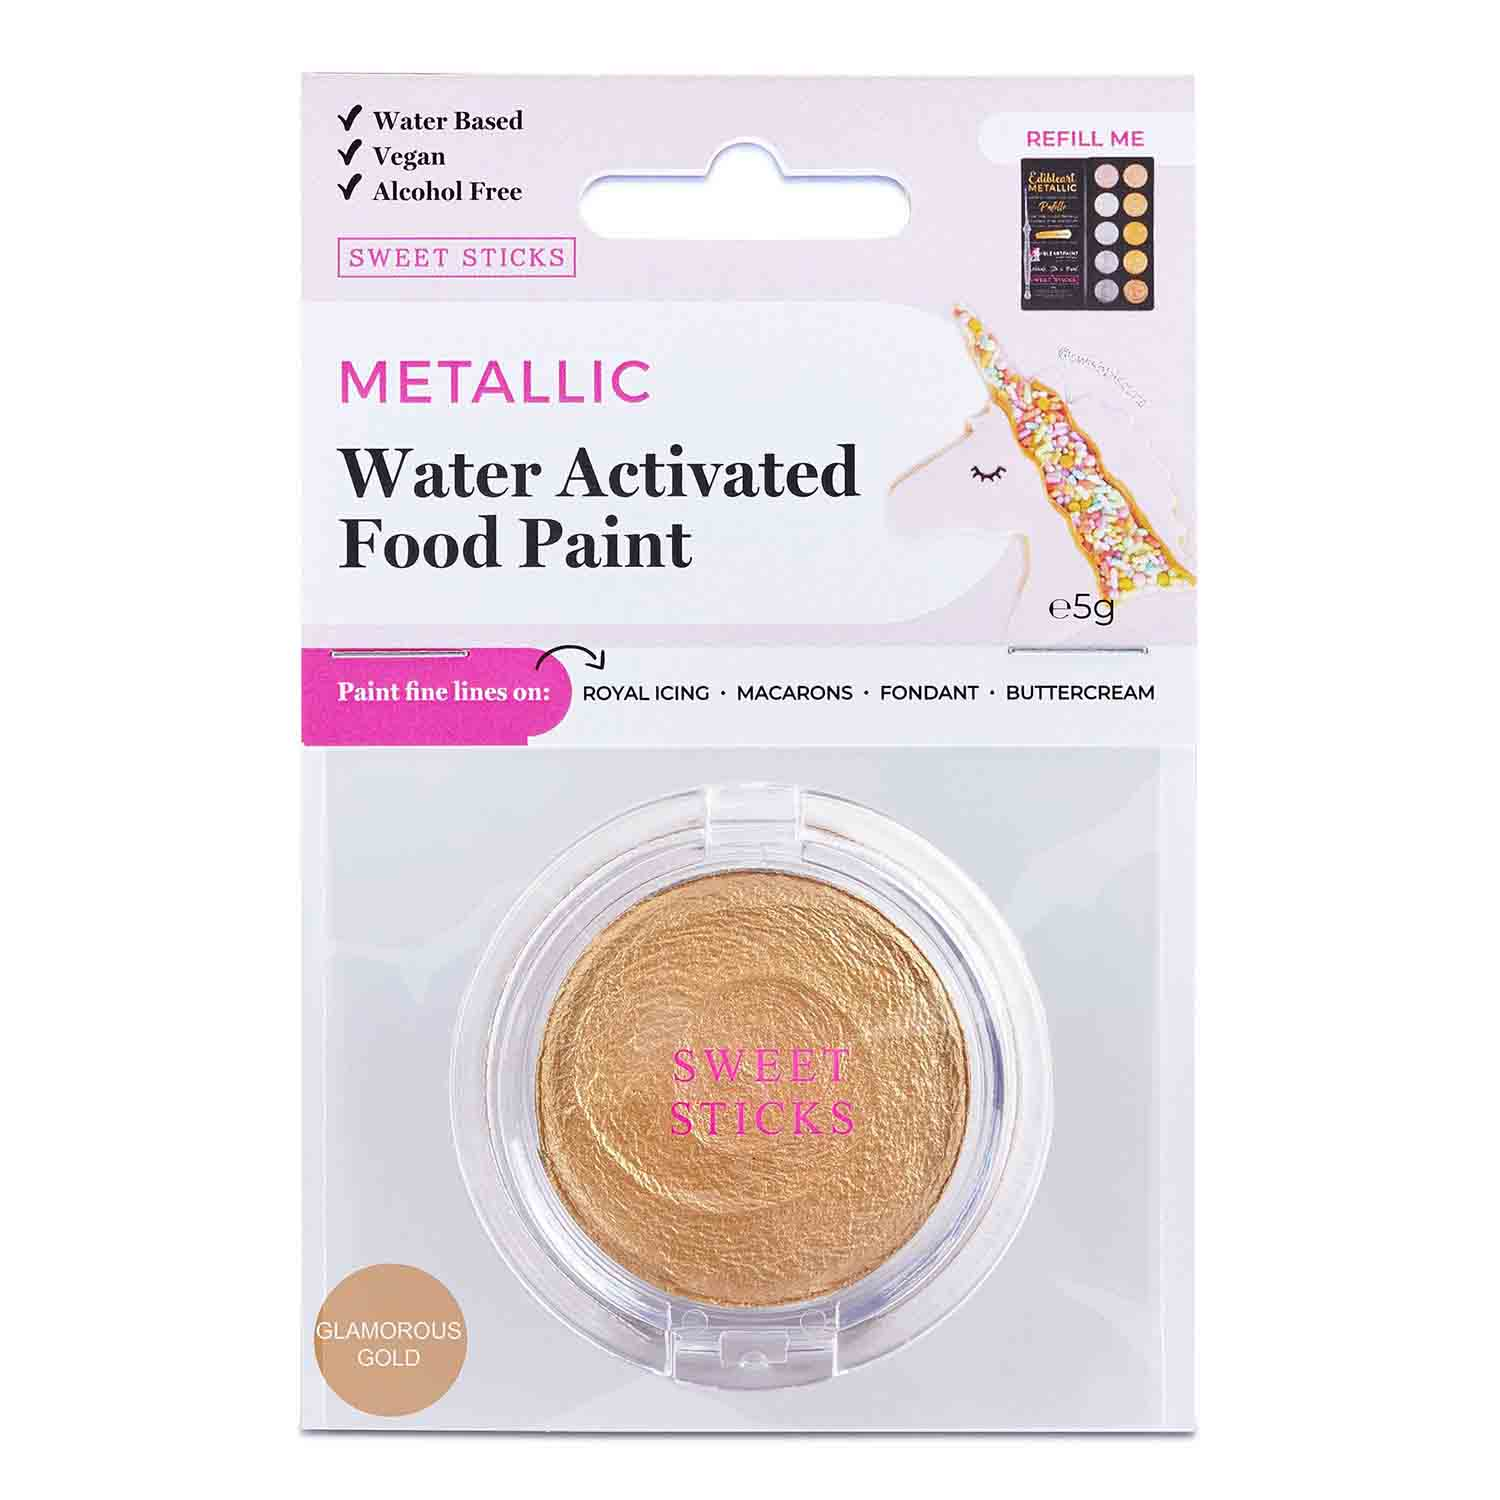 Glamorous Gold Water Activated Food Paint